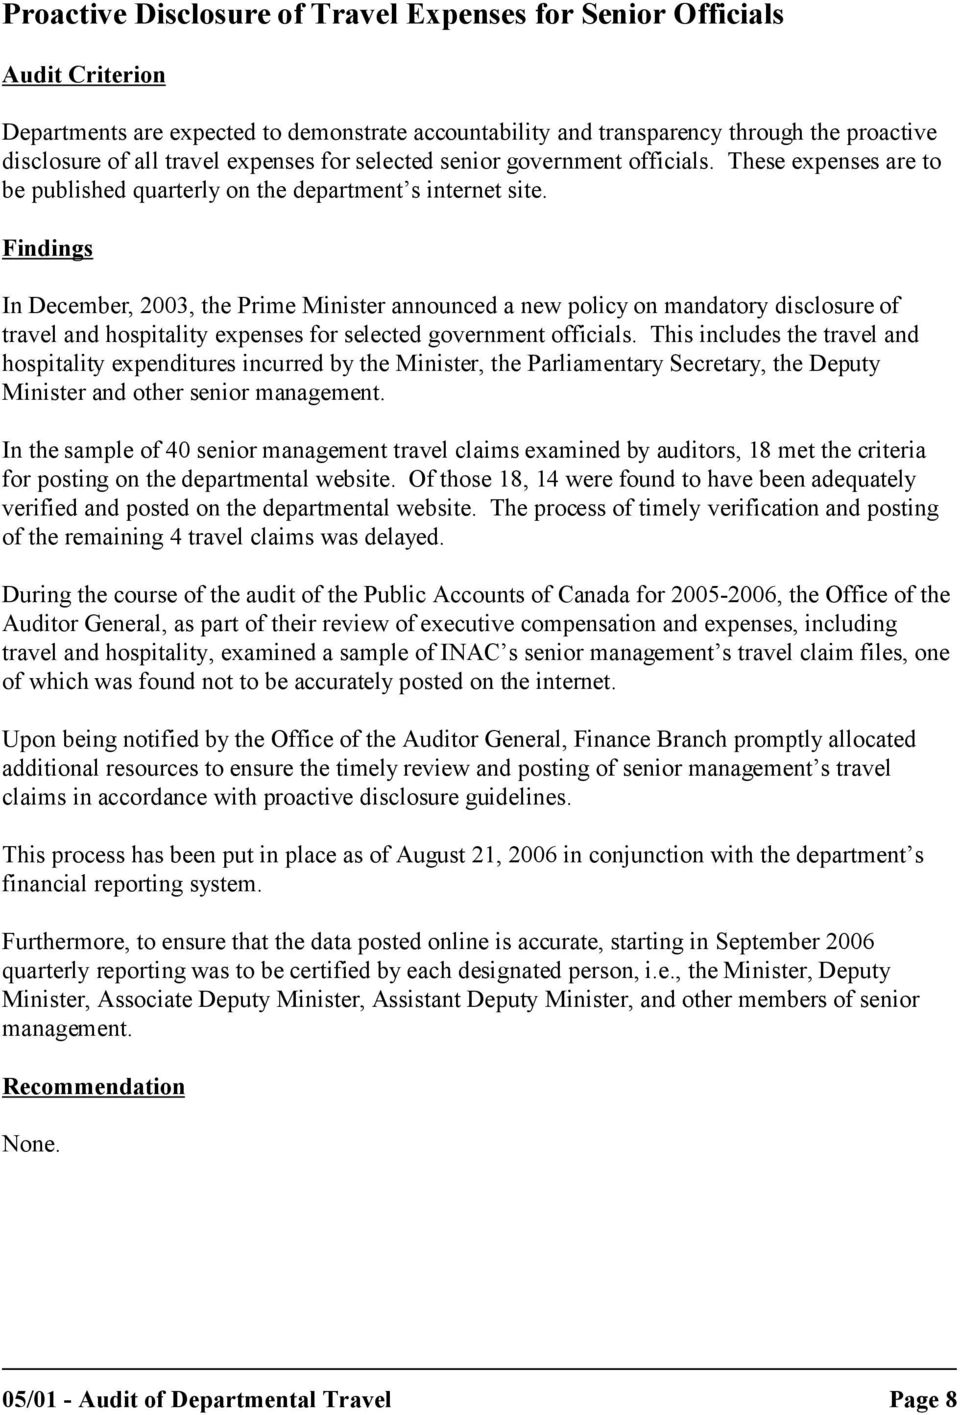 Findings In December, 2003, the Prime Minister announced a new policy on mandatory disclosure of travel and hospitality expenses for selected government officials.